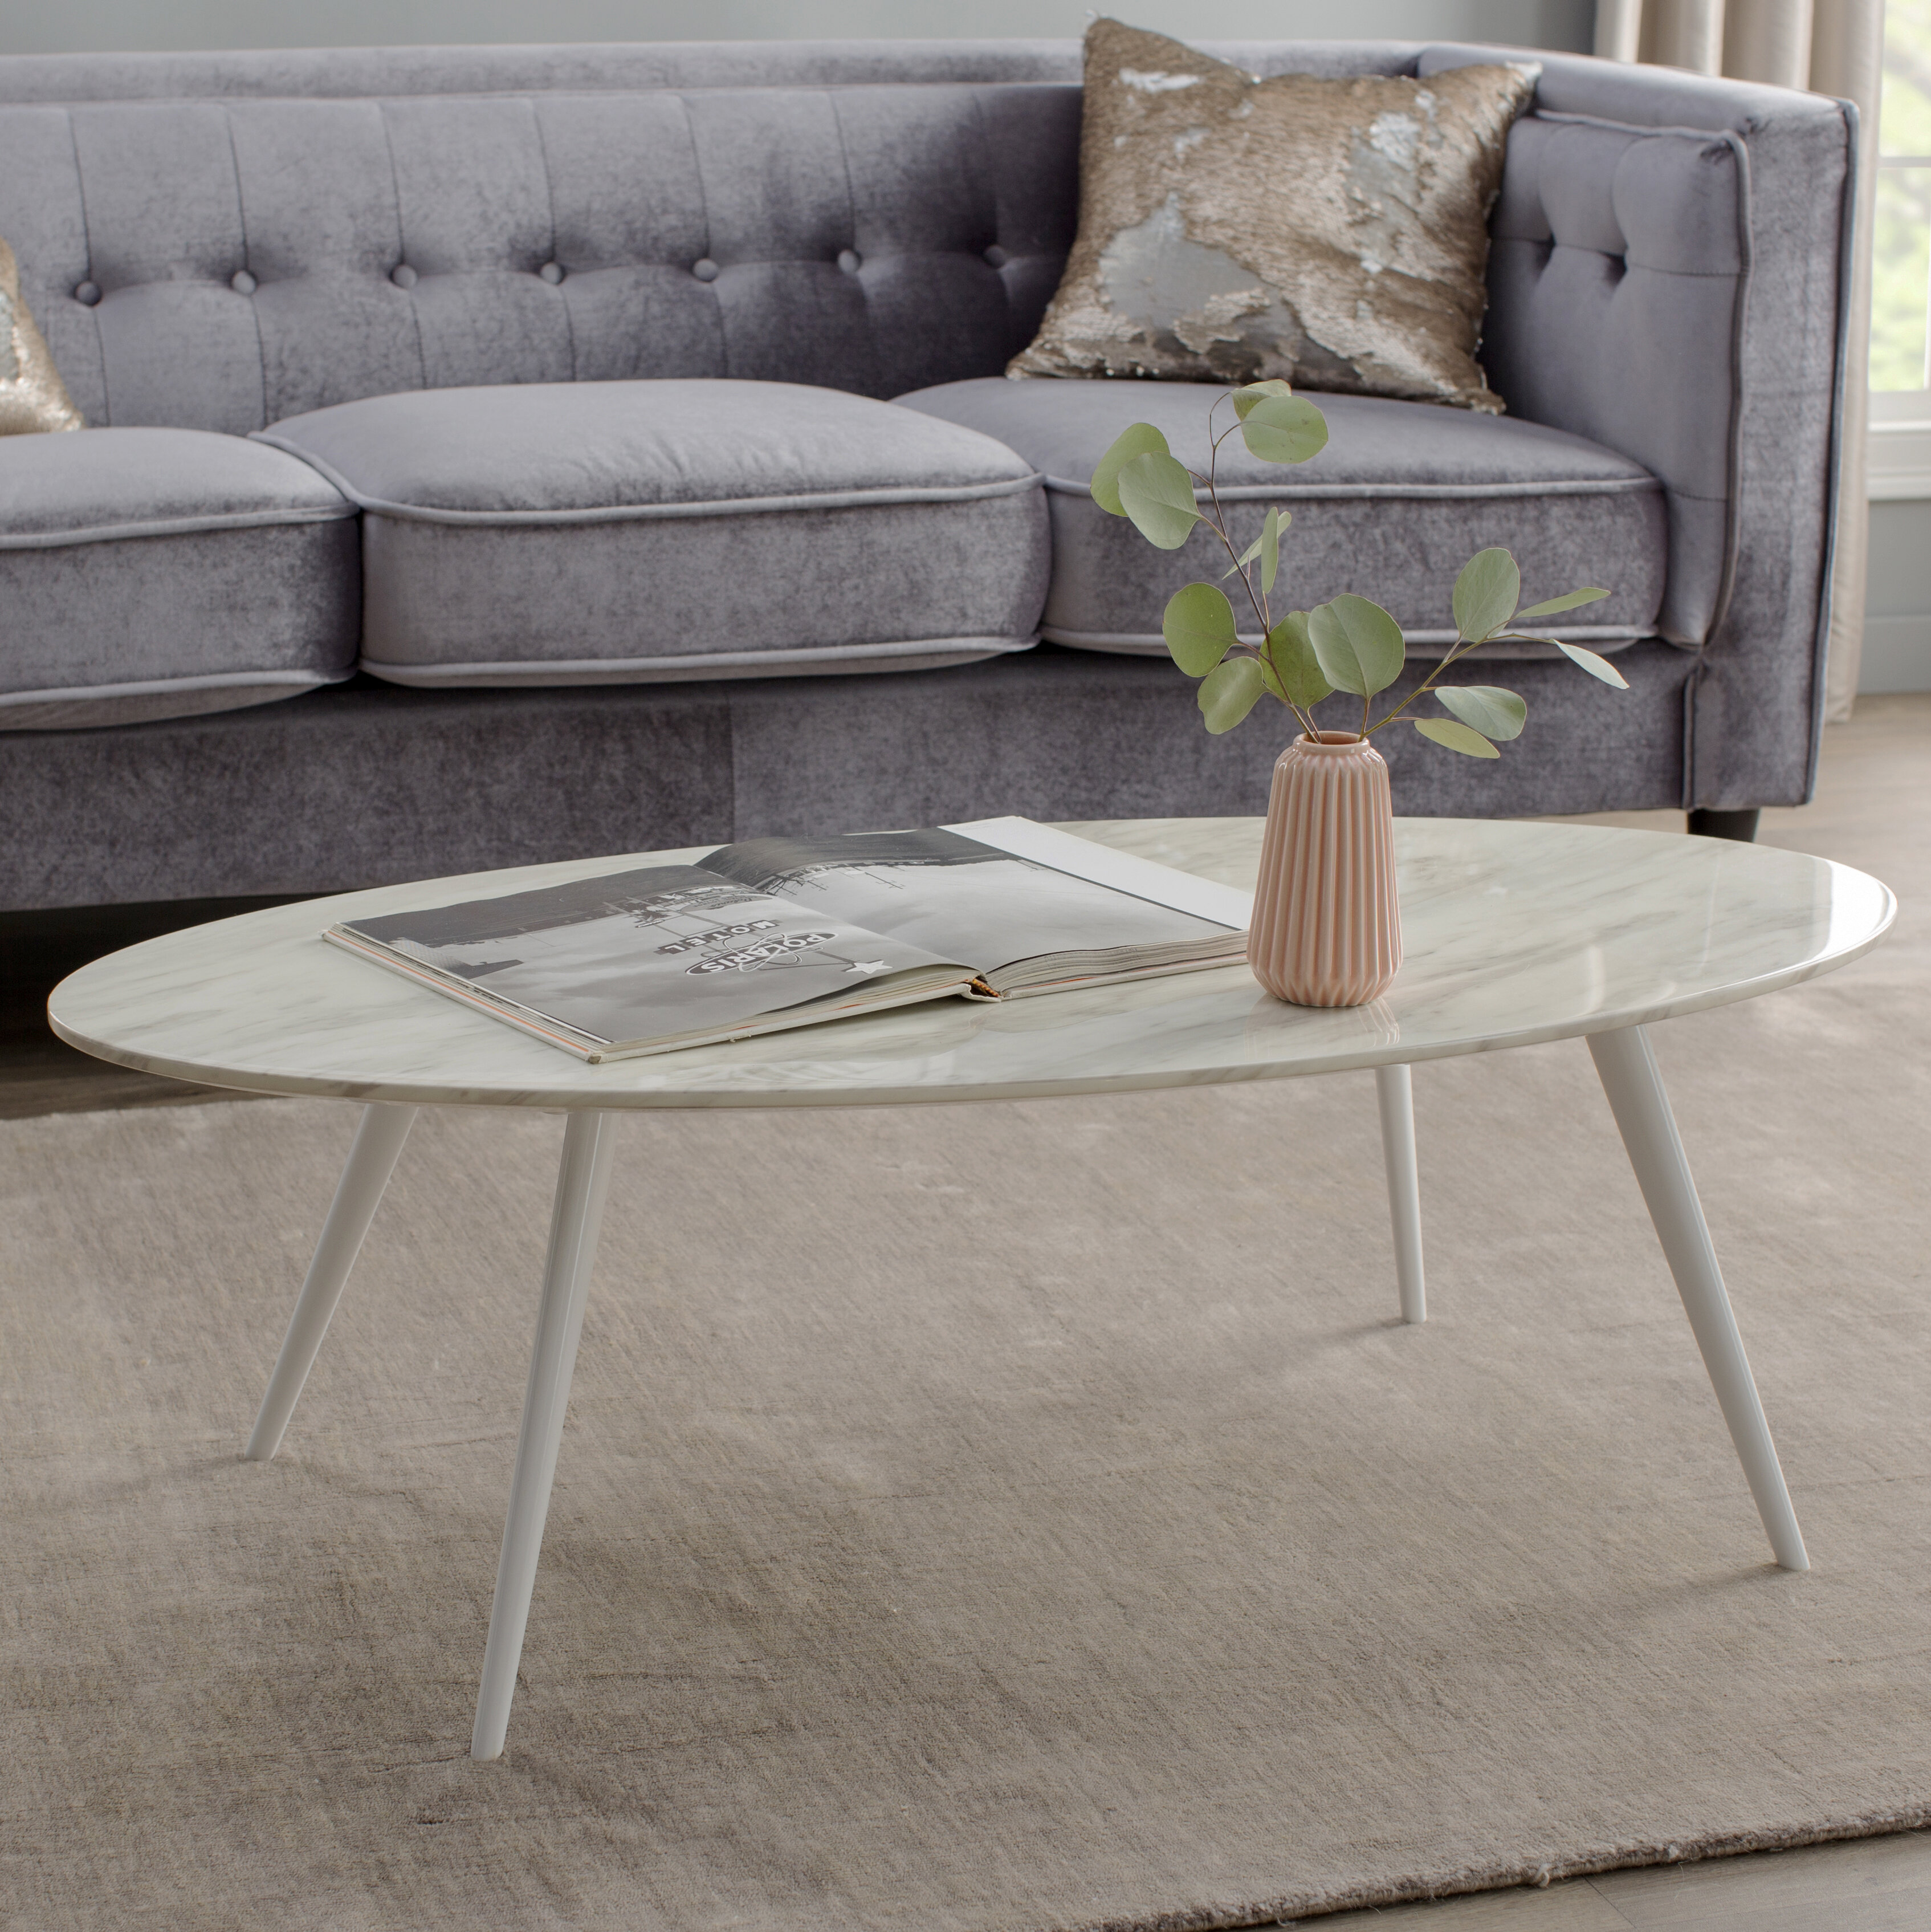 m a d Furniture Airfoil Coffee Table